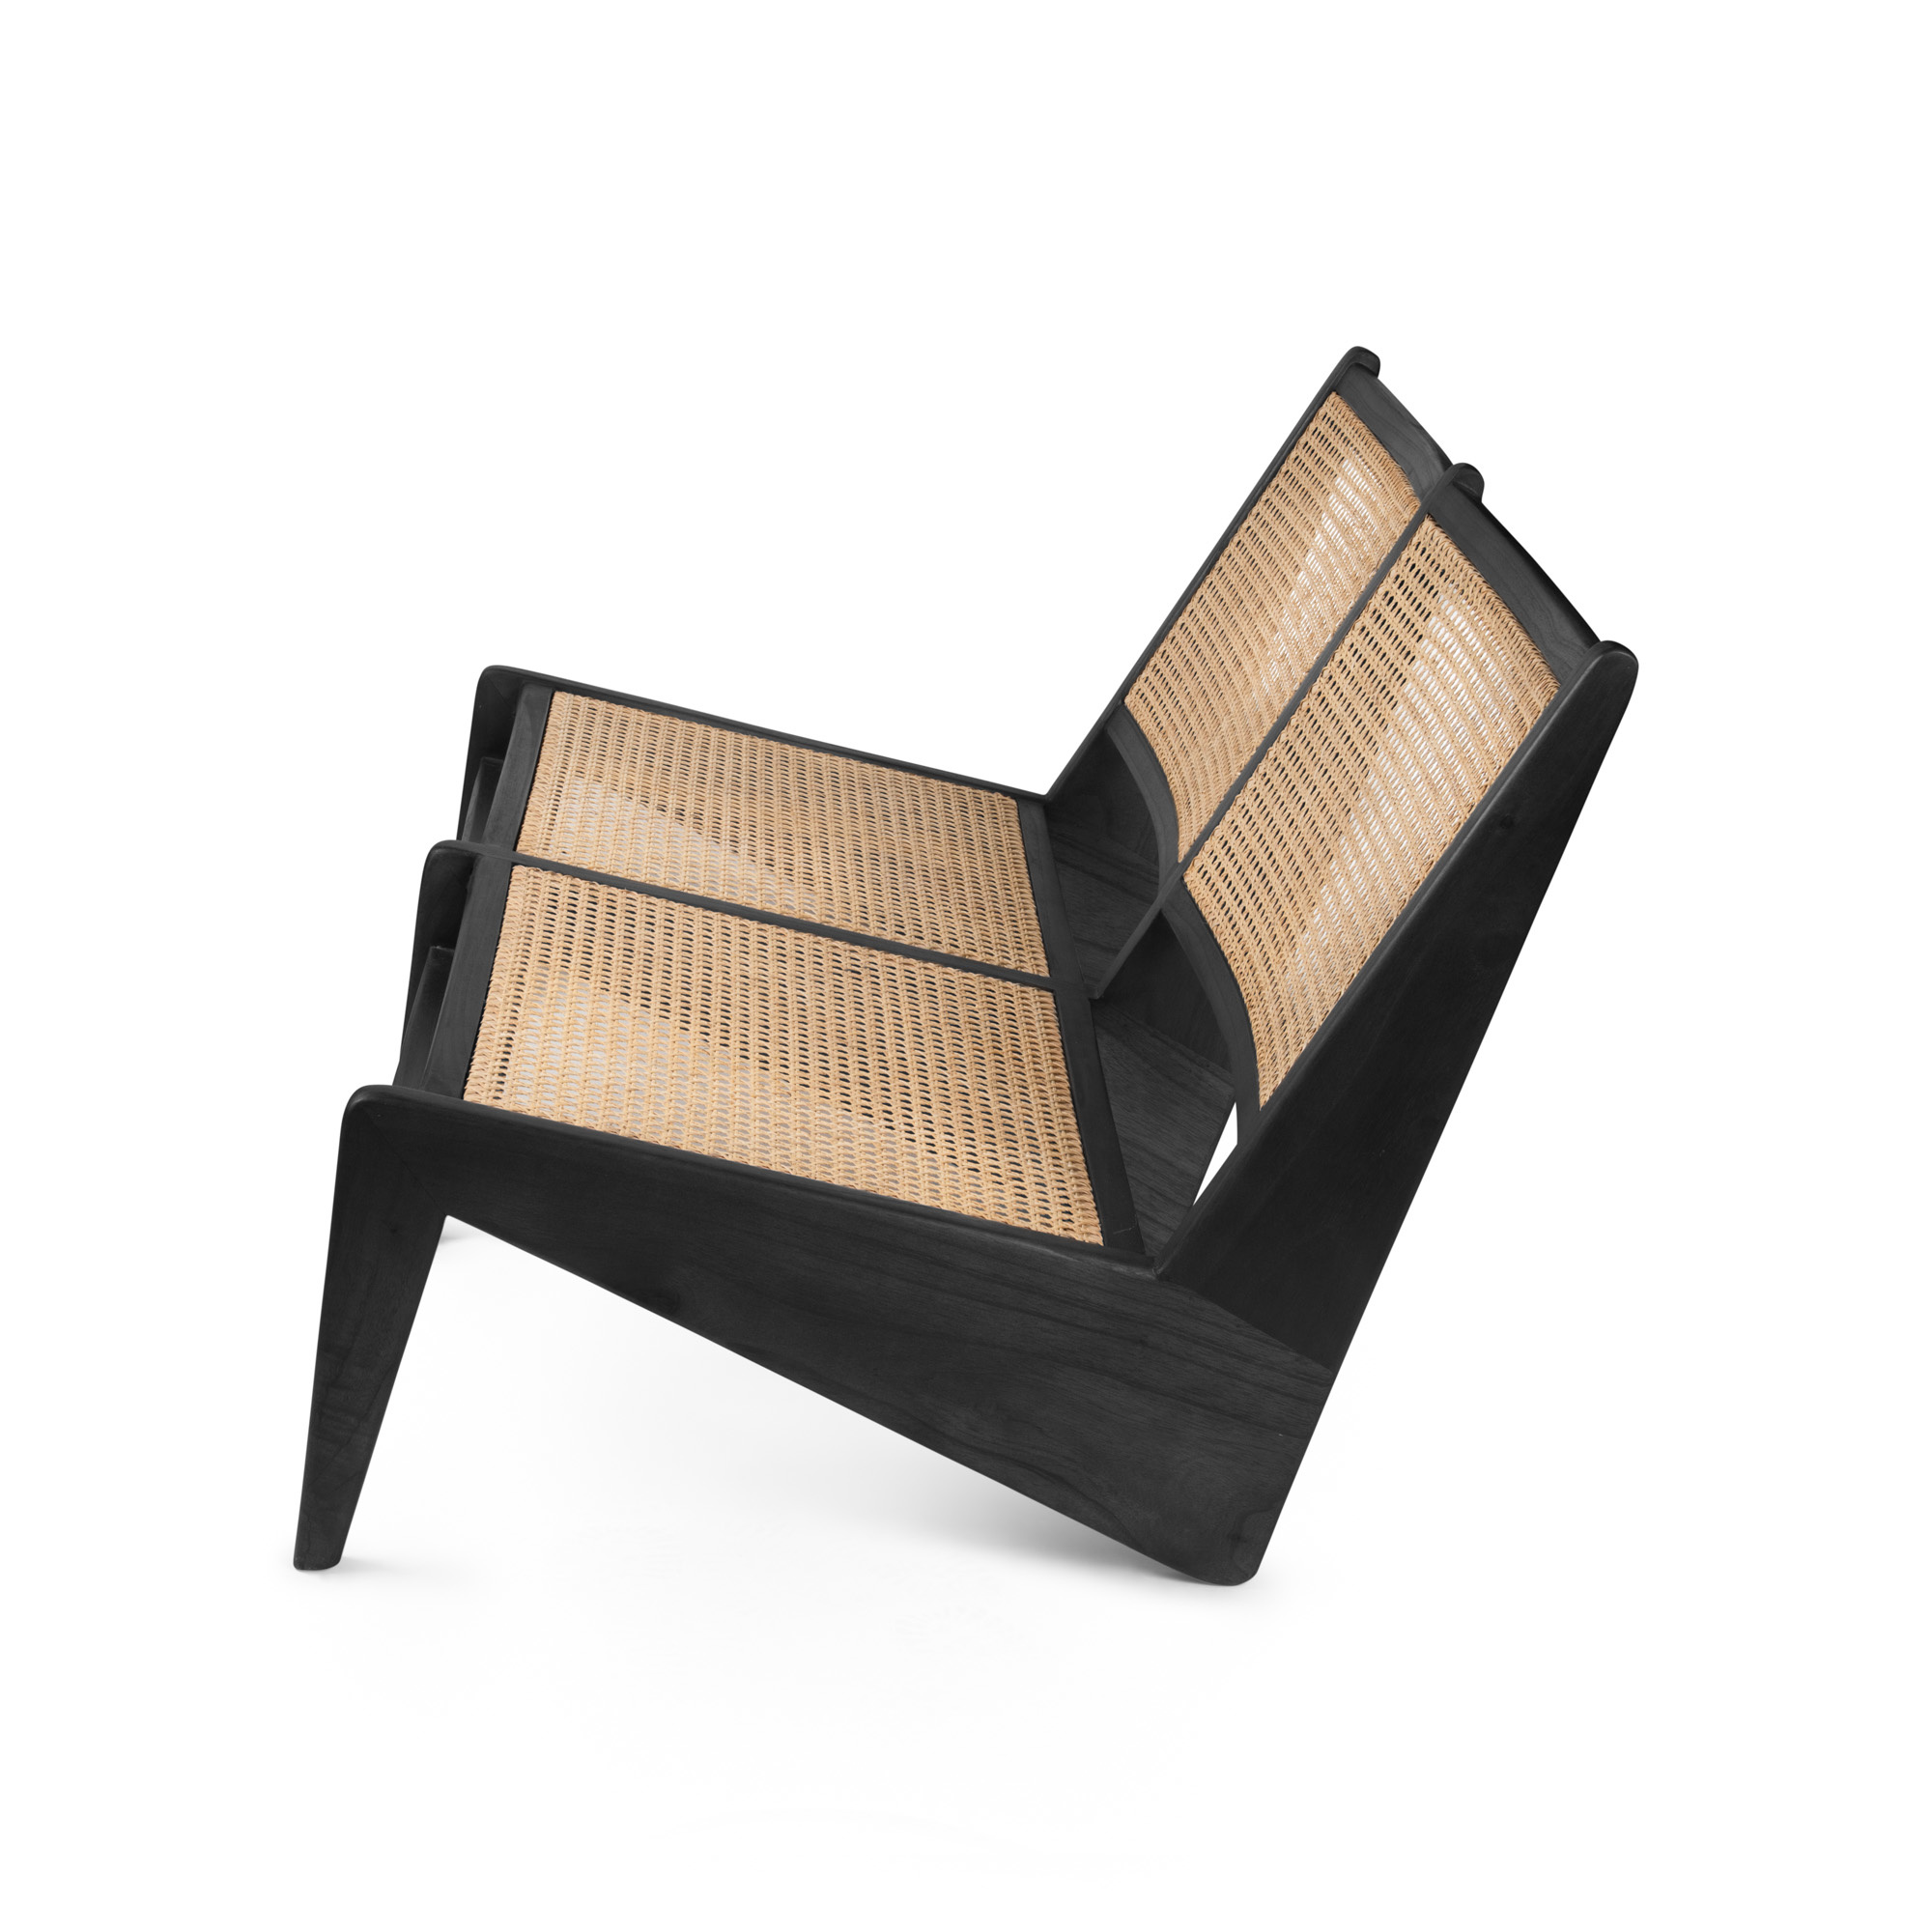 Kangaroo Chair Bench 2 - Charcoal Black-3